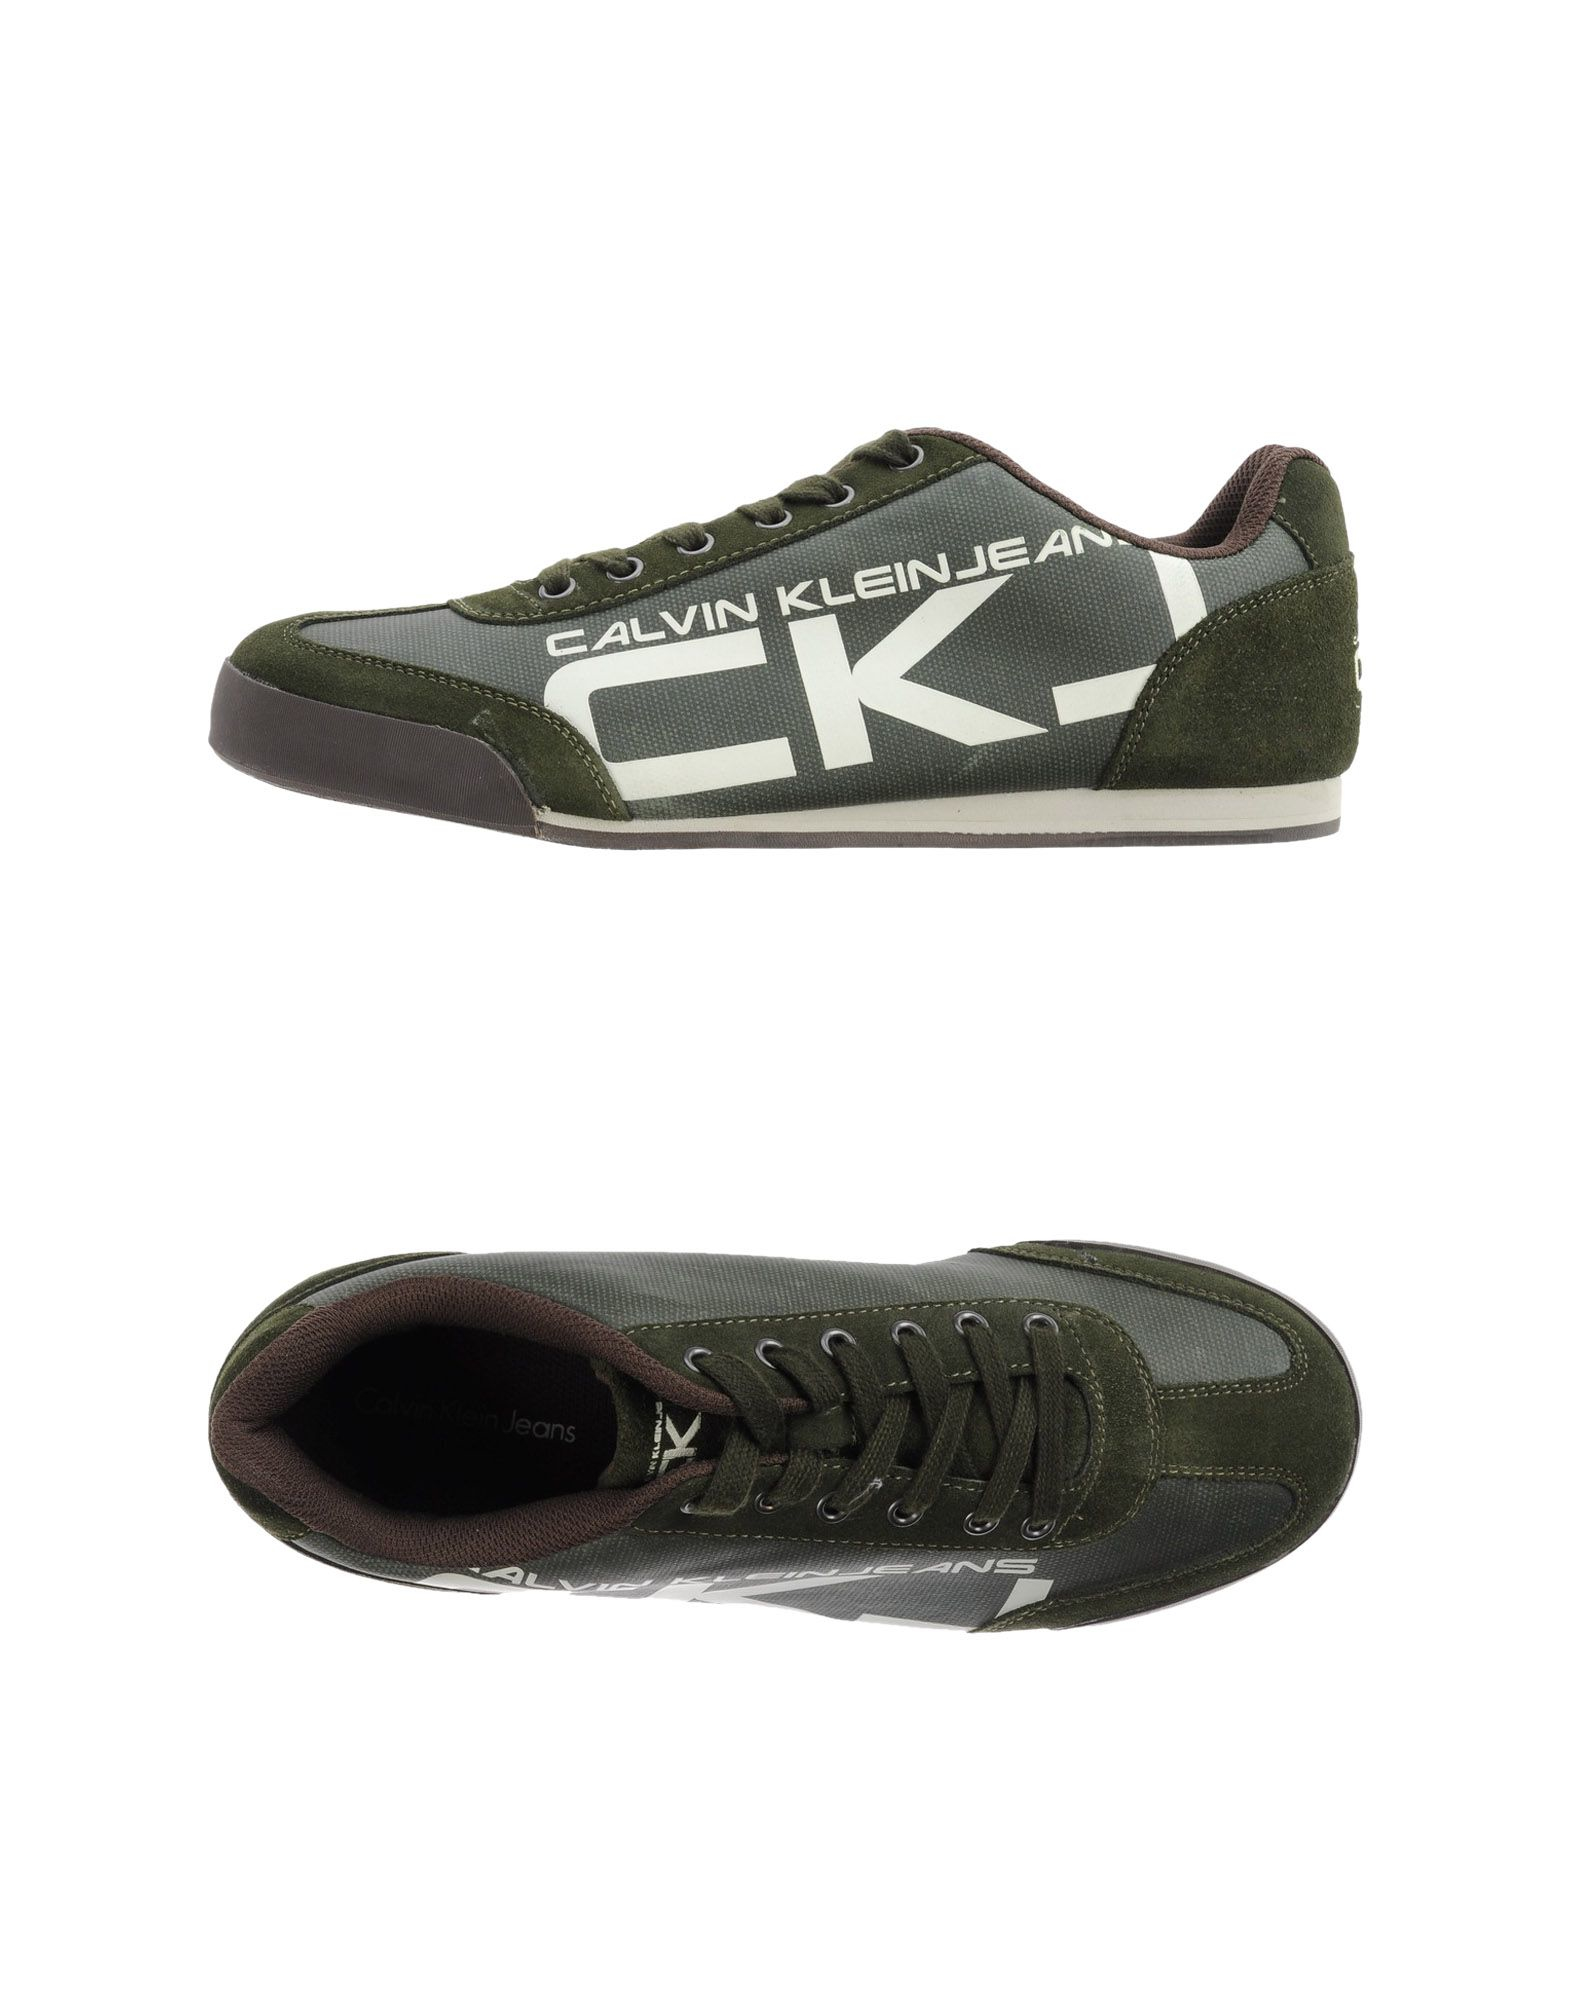 calvin klein jeans low tops trainers in green for men lyst. Black Bedroom Furniture Sets. Home Design Ideas